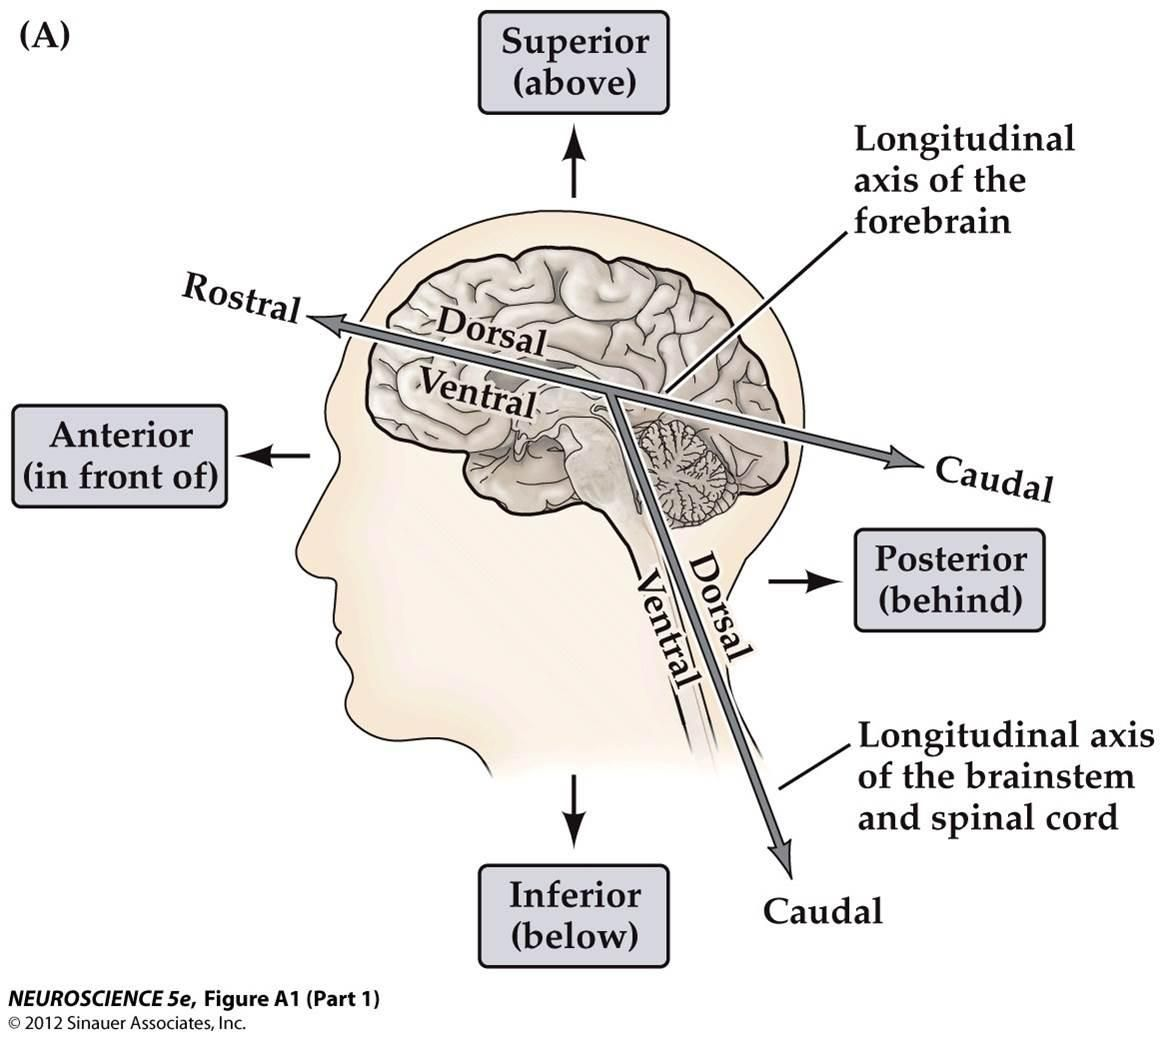 anatomical planes and directions of neuroanatomy.... Above the ...